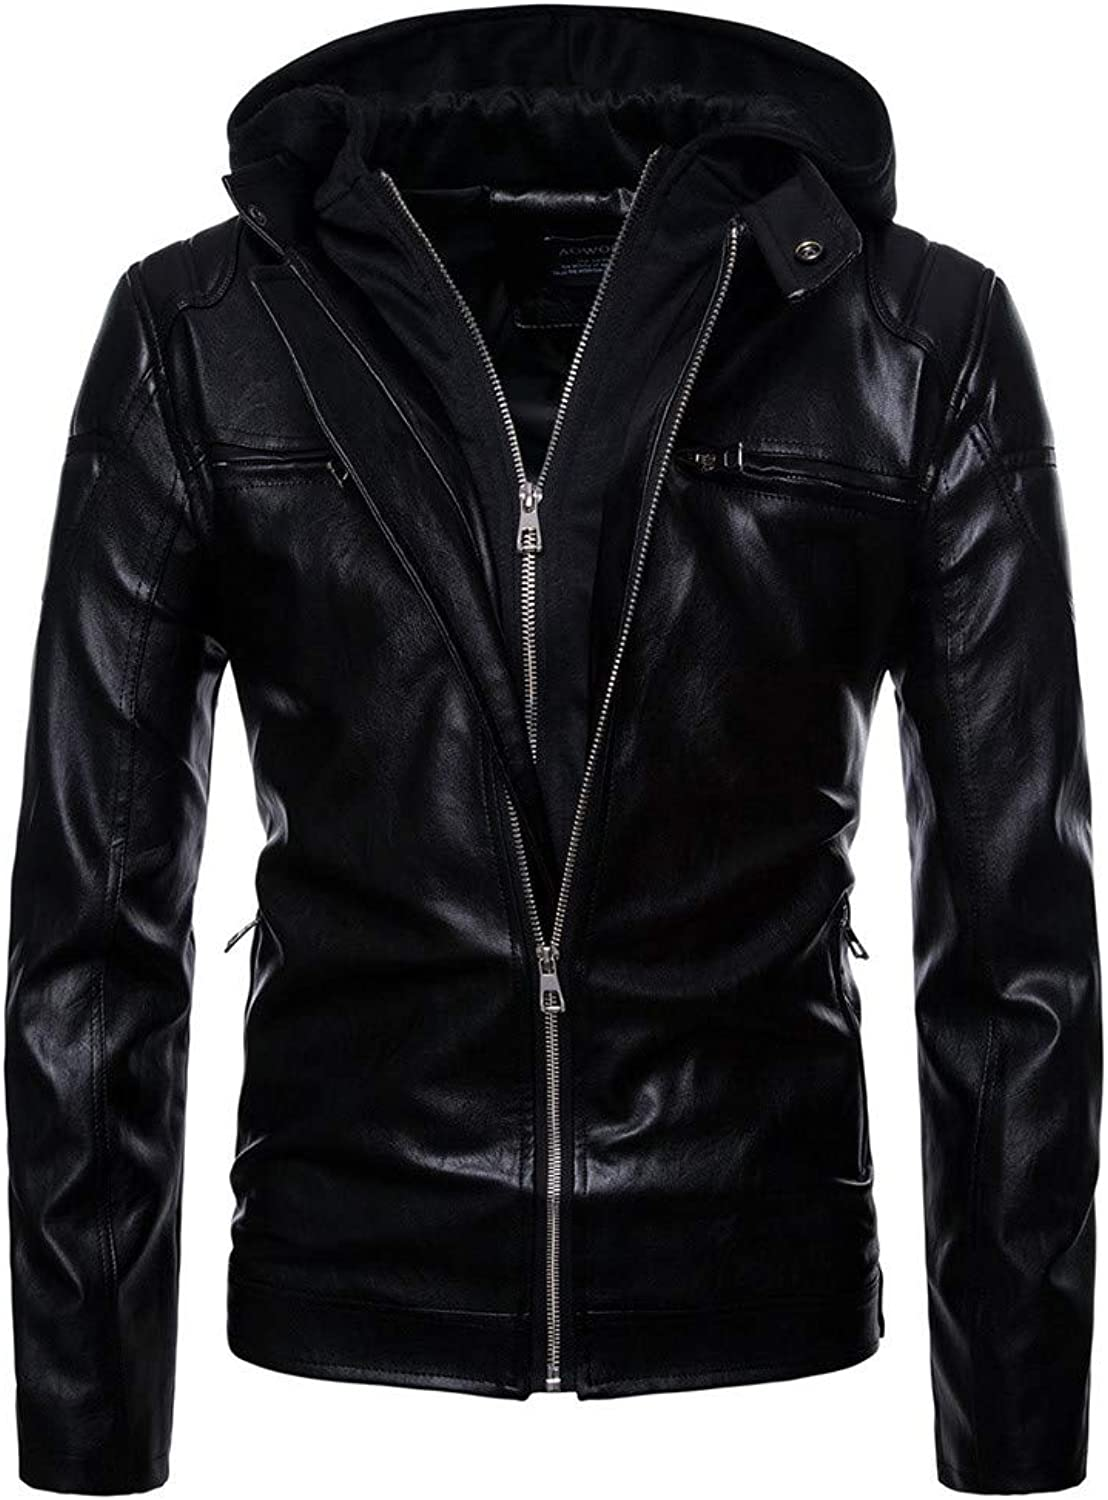 Men's Autumn Winter Casual Pocket Zipper Cap Thermal Leather Jacket Top Coat (color   Black, Size   M)